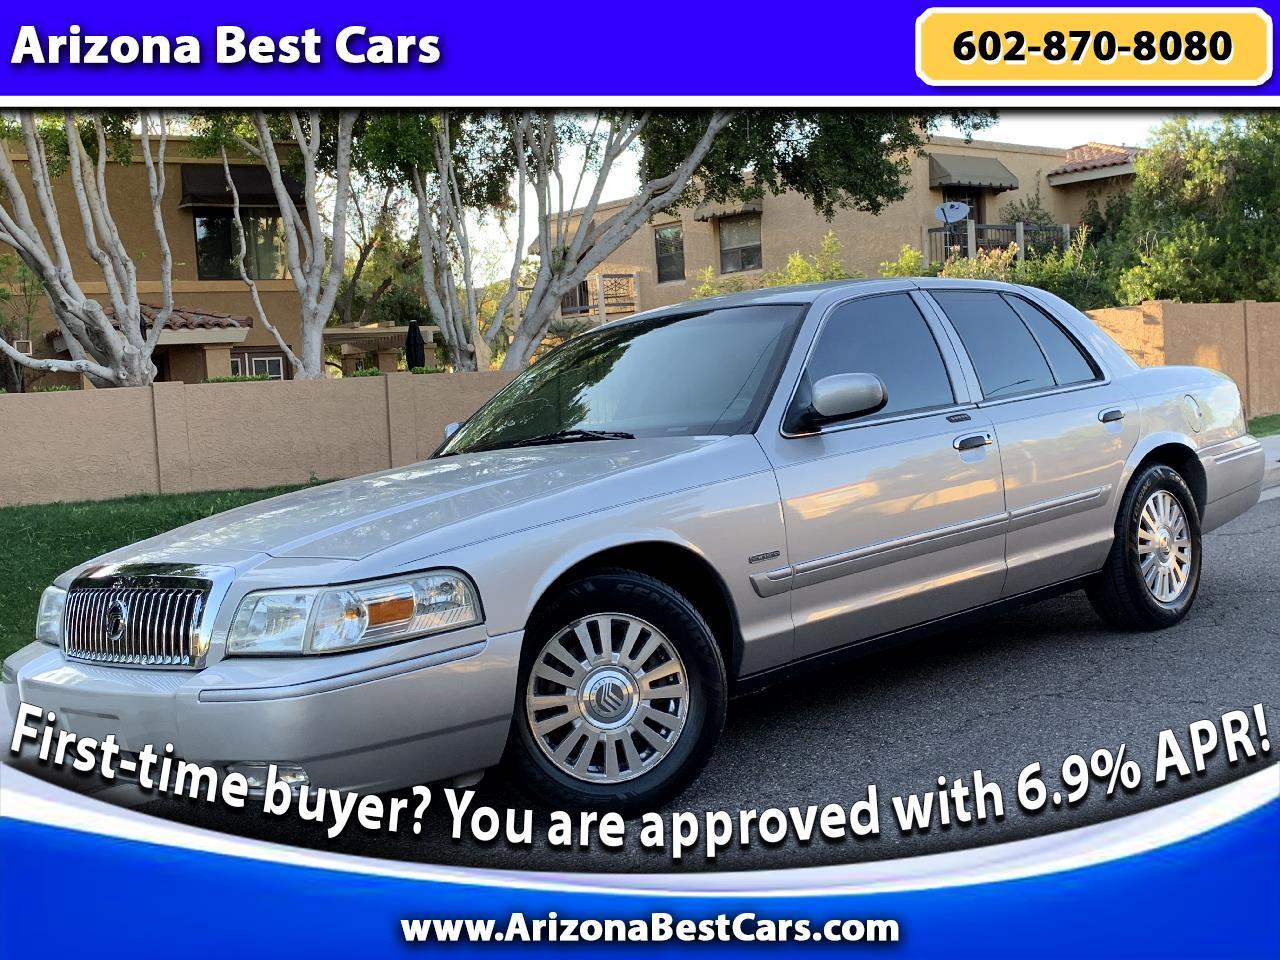 2006 Mercury Grand Marquis LS Ultimate